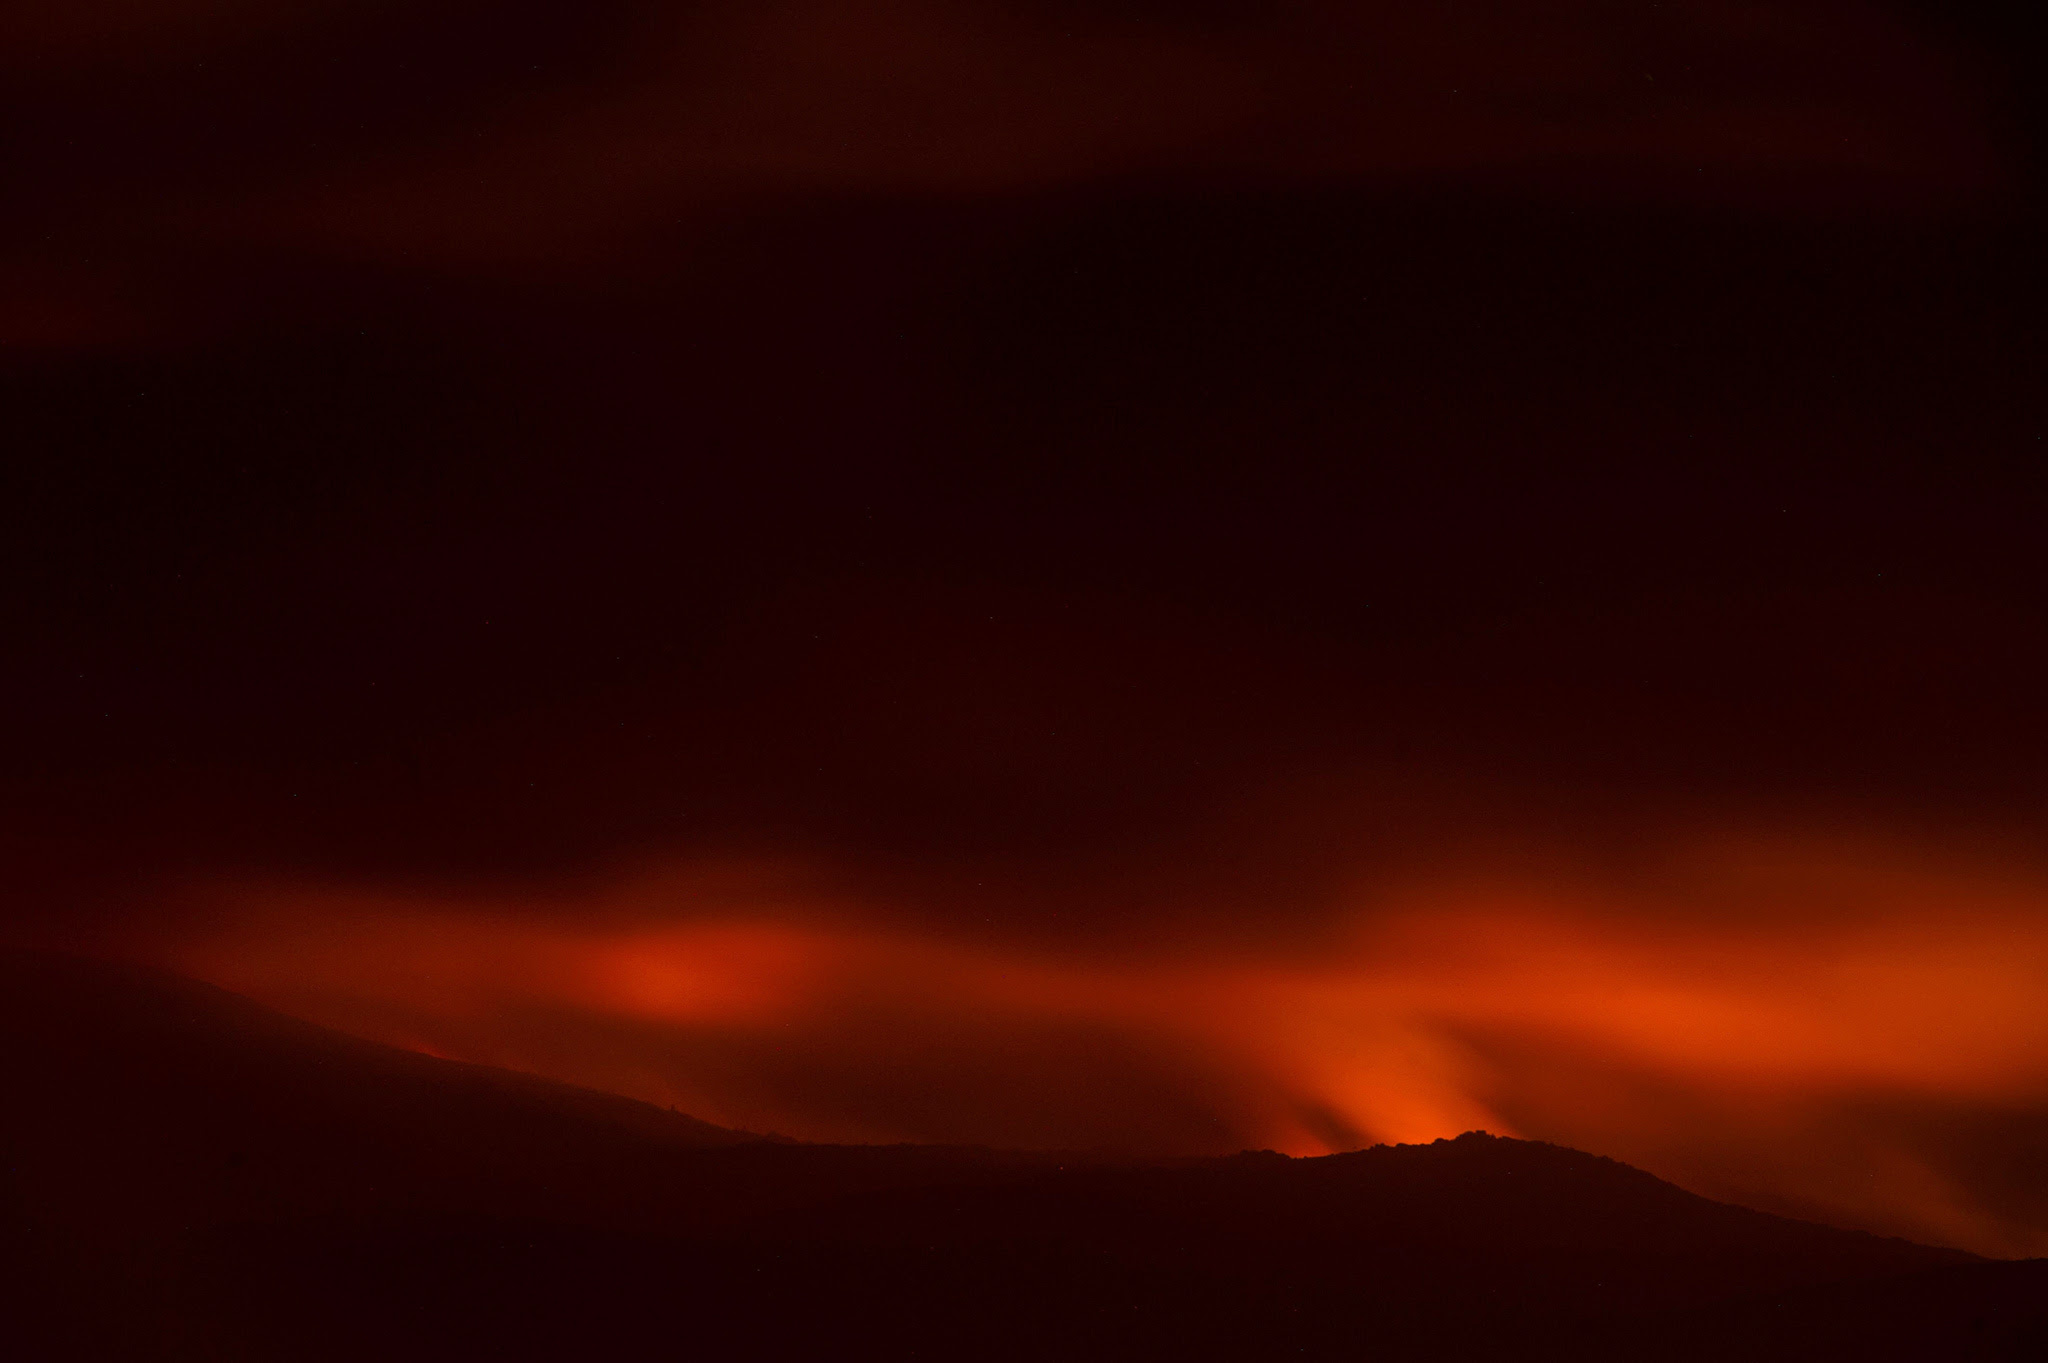 Light from a forest fire colours the sky red near the village of Entrimo, northwestern Spain